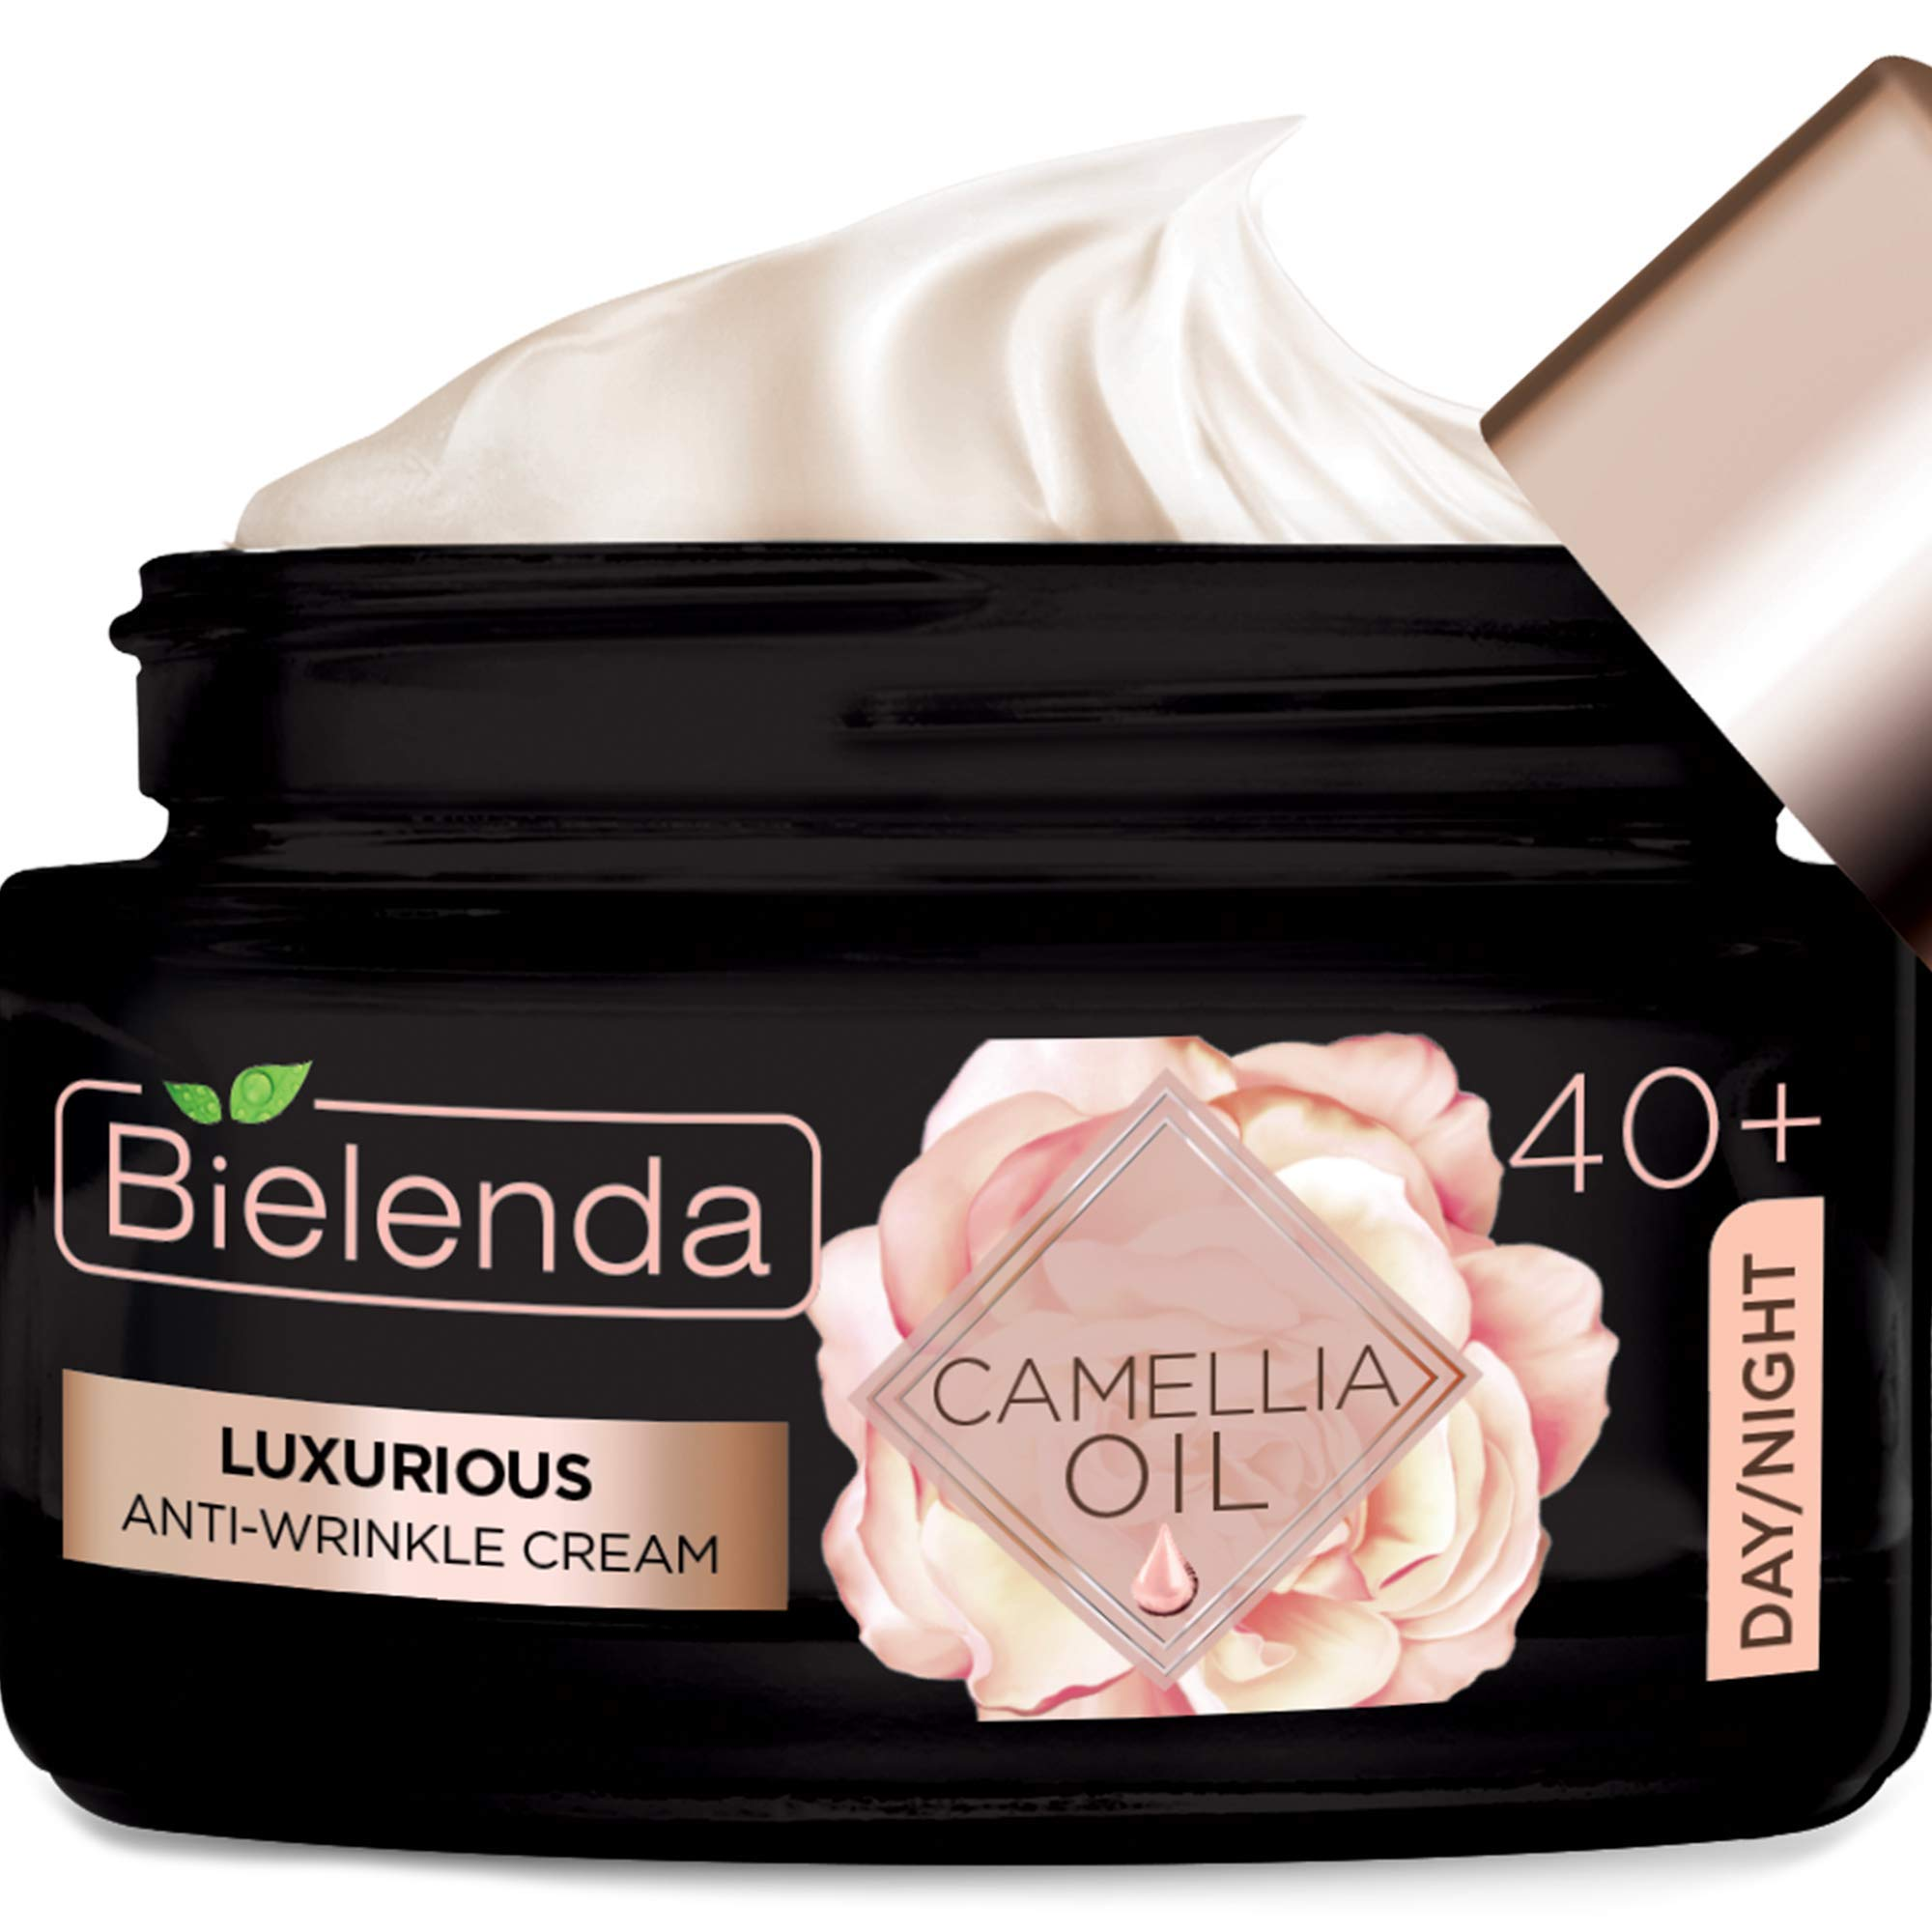 Bielenda CAMELLIA OIL Luxurious anti-wrinkle cream 40+ day/night, 50 ml